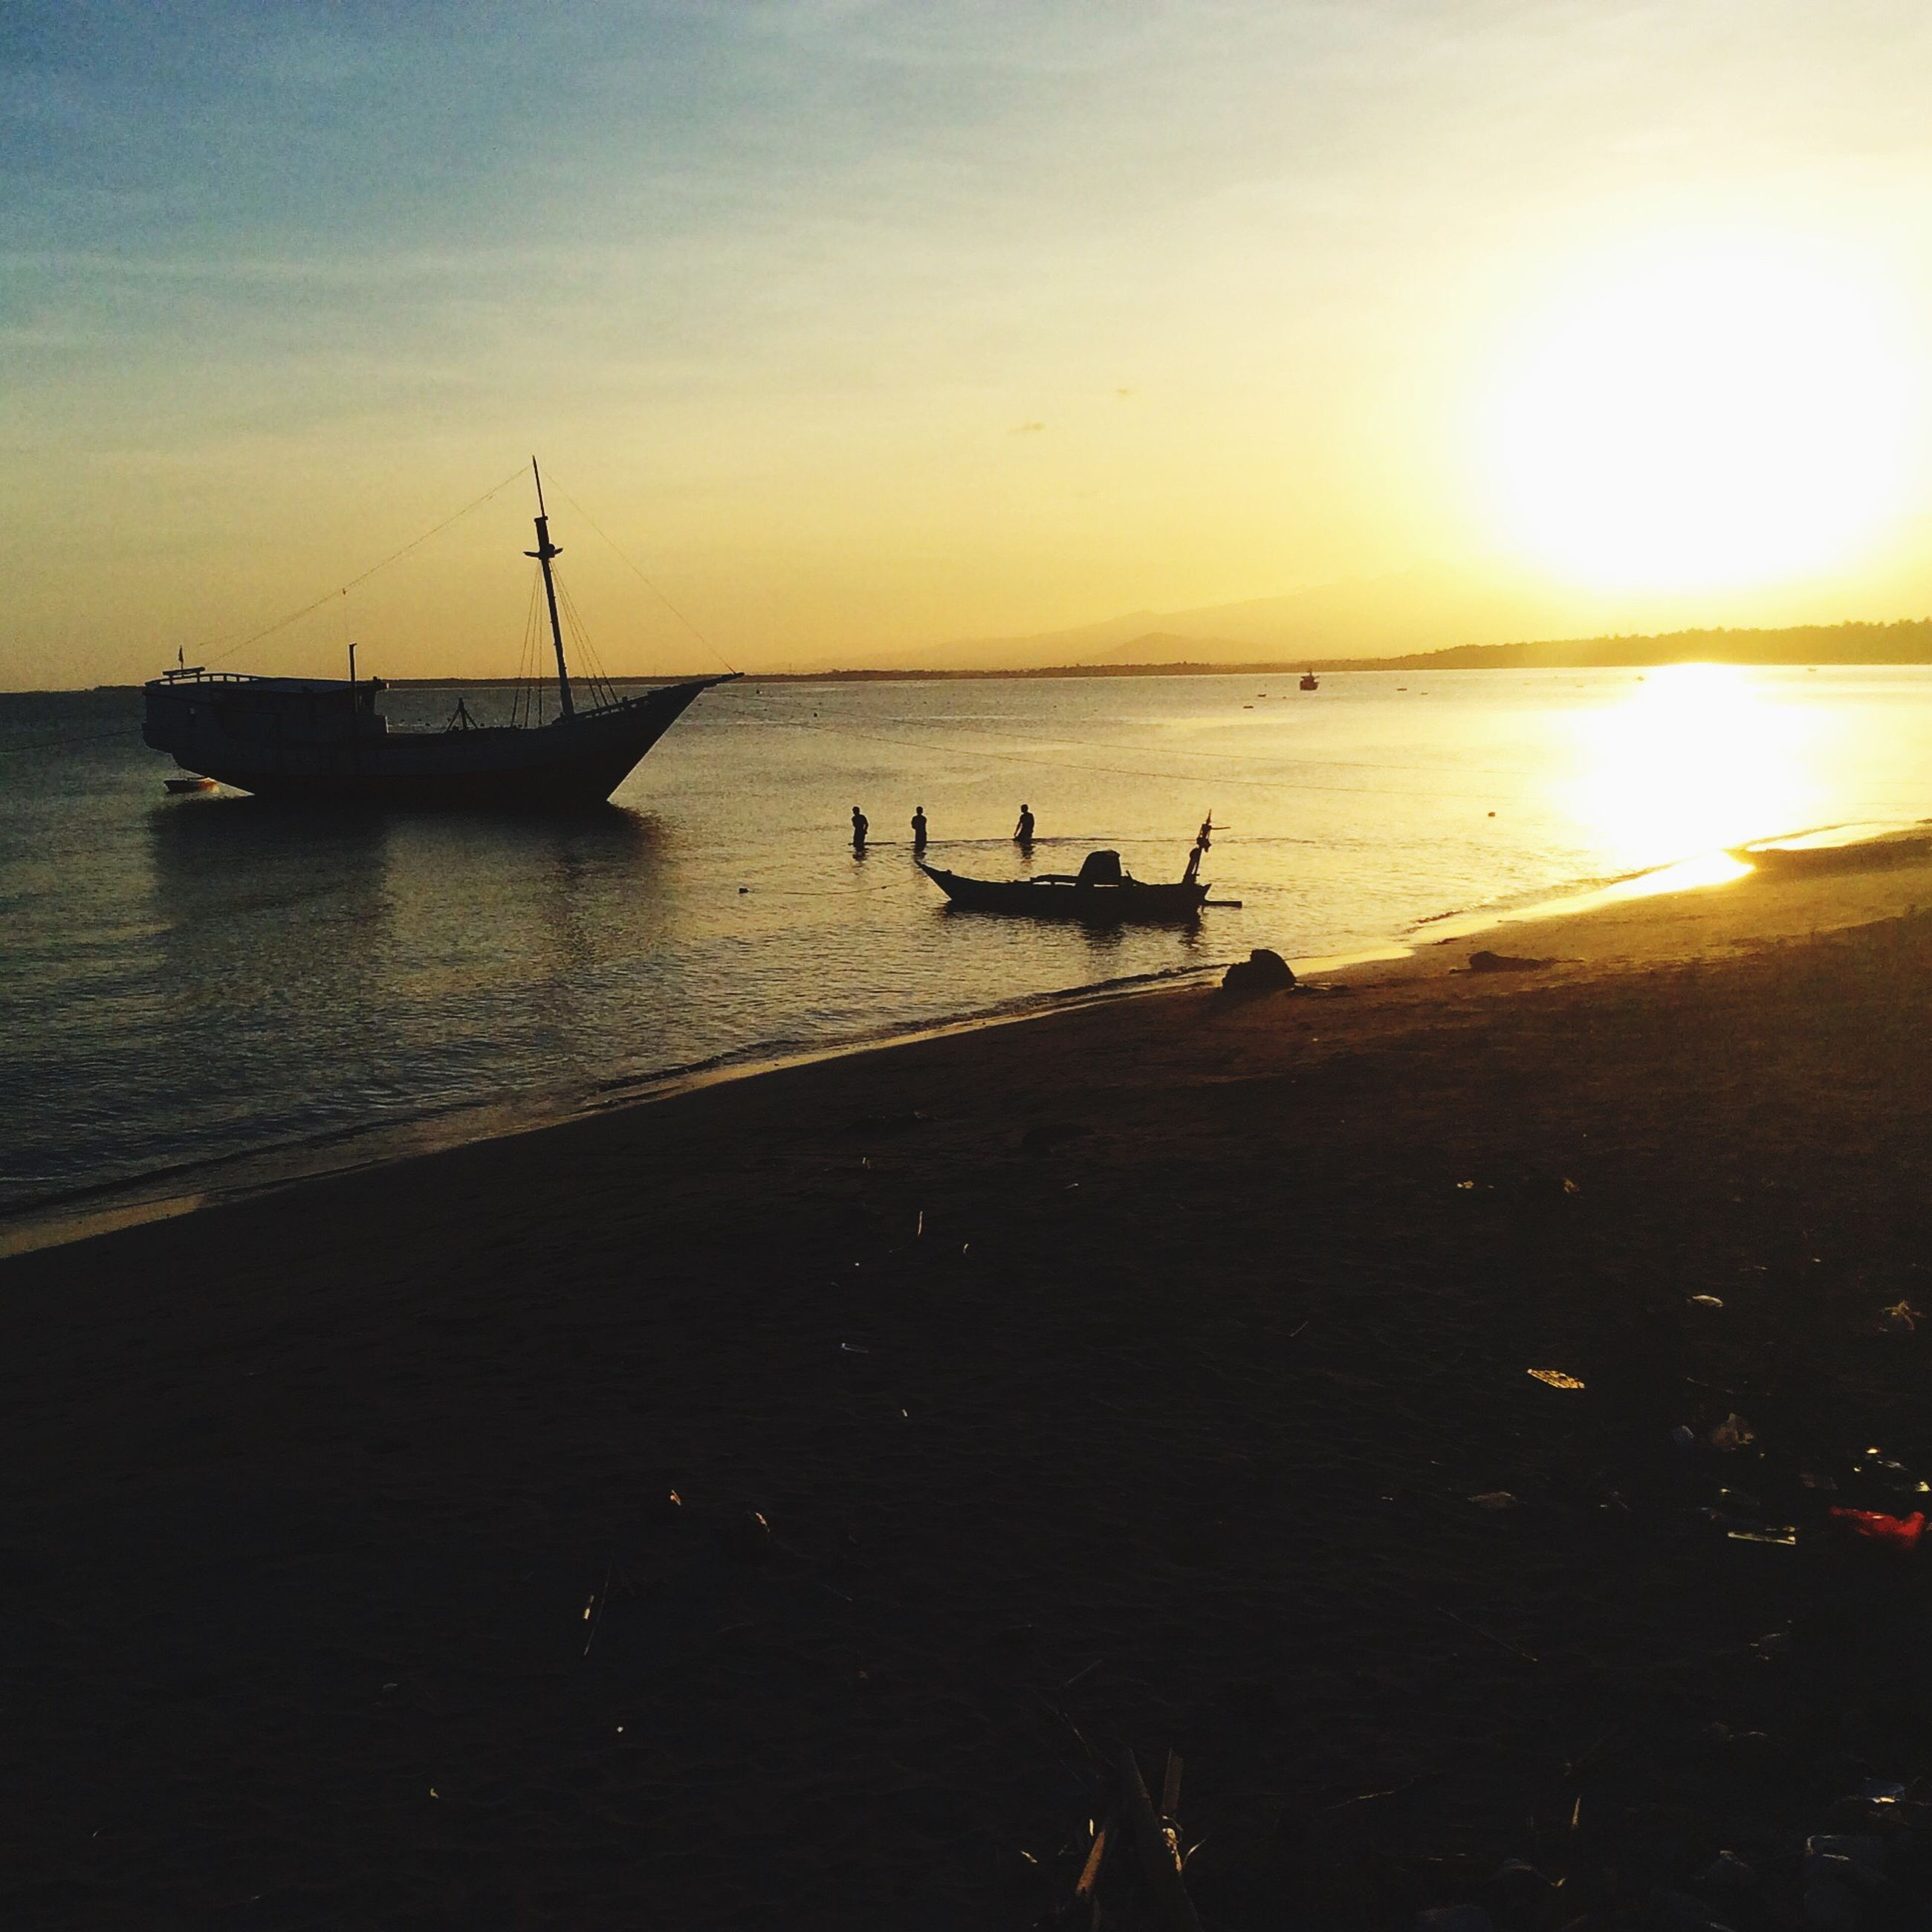 sunset, sea, nautical vessel, transportation, water, mode of transport, boat, sun, horizon over water, scenics, orange color, sky, silhouette, tranquil scene, beauty in nature, tranquility, moored, nature, beach, sunlight